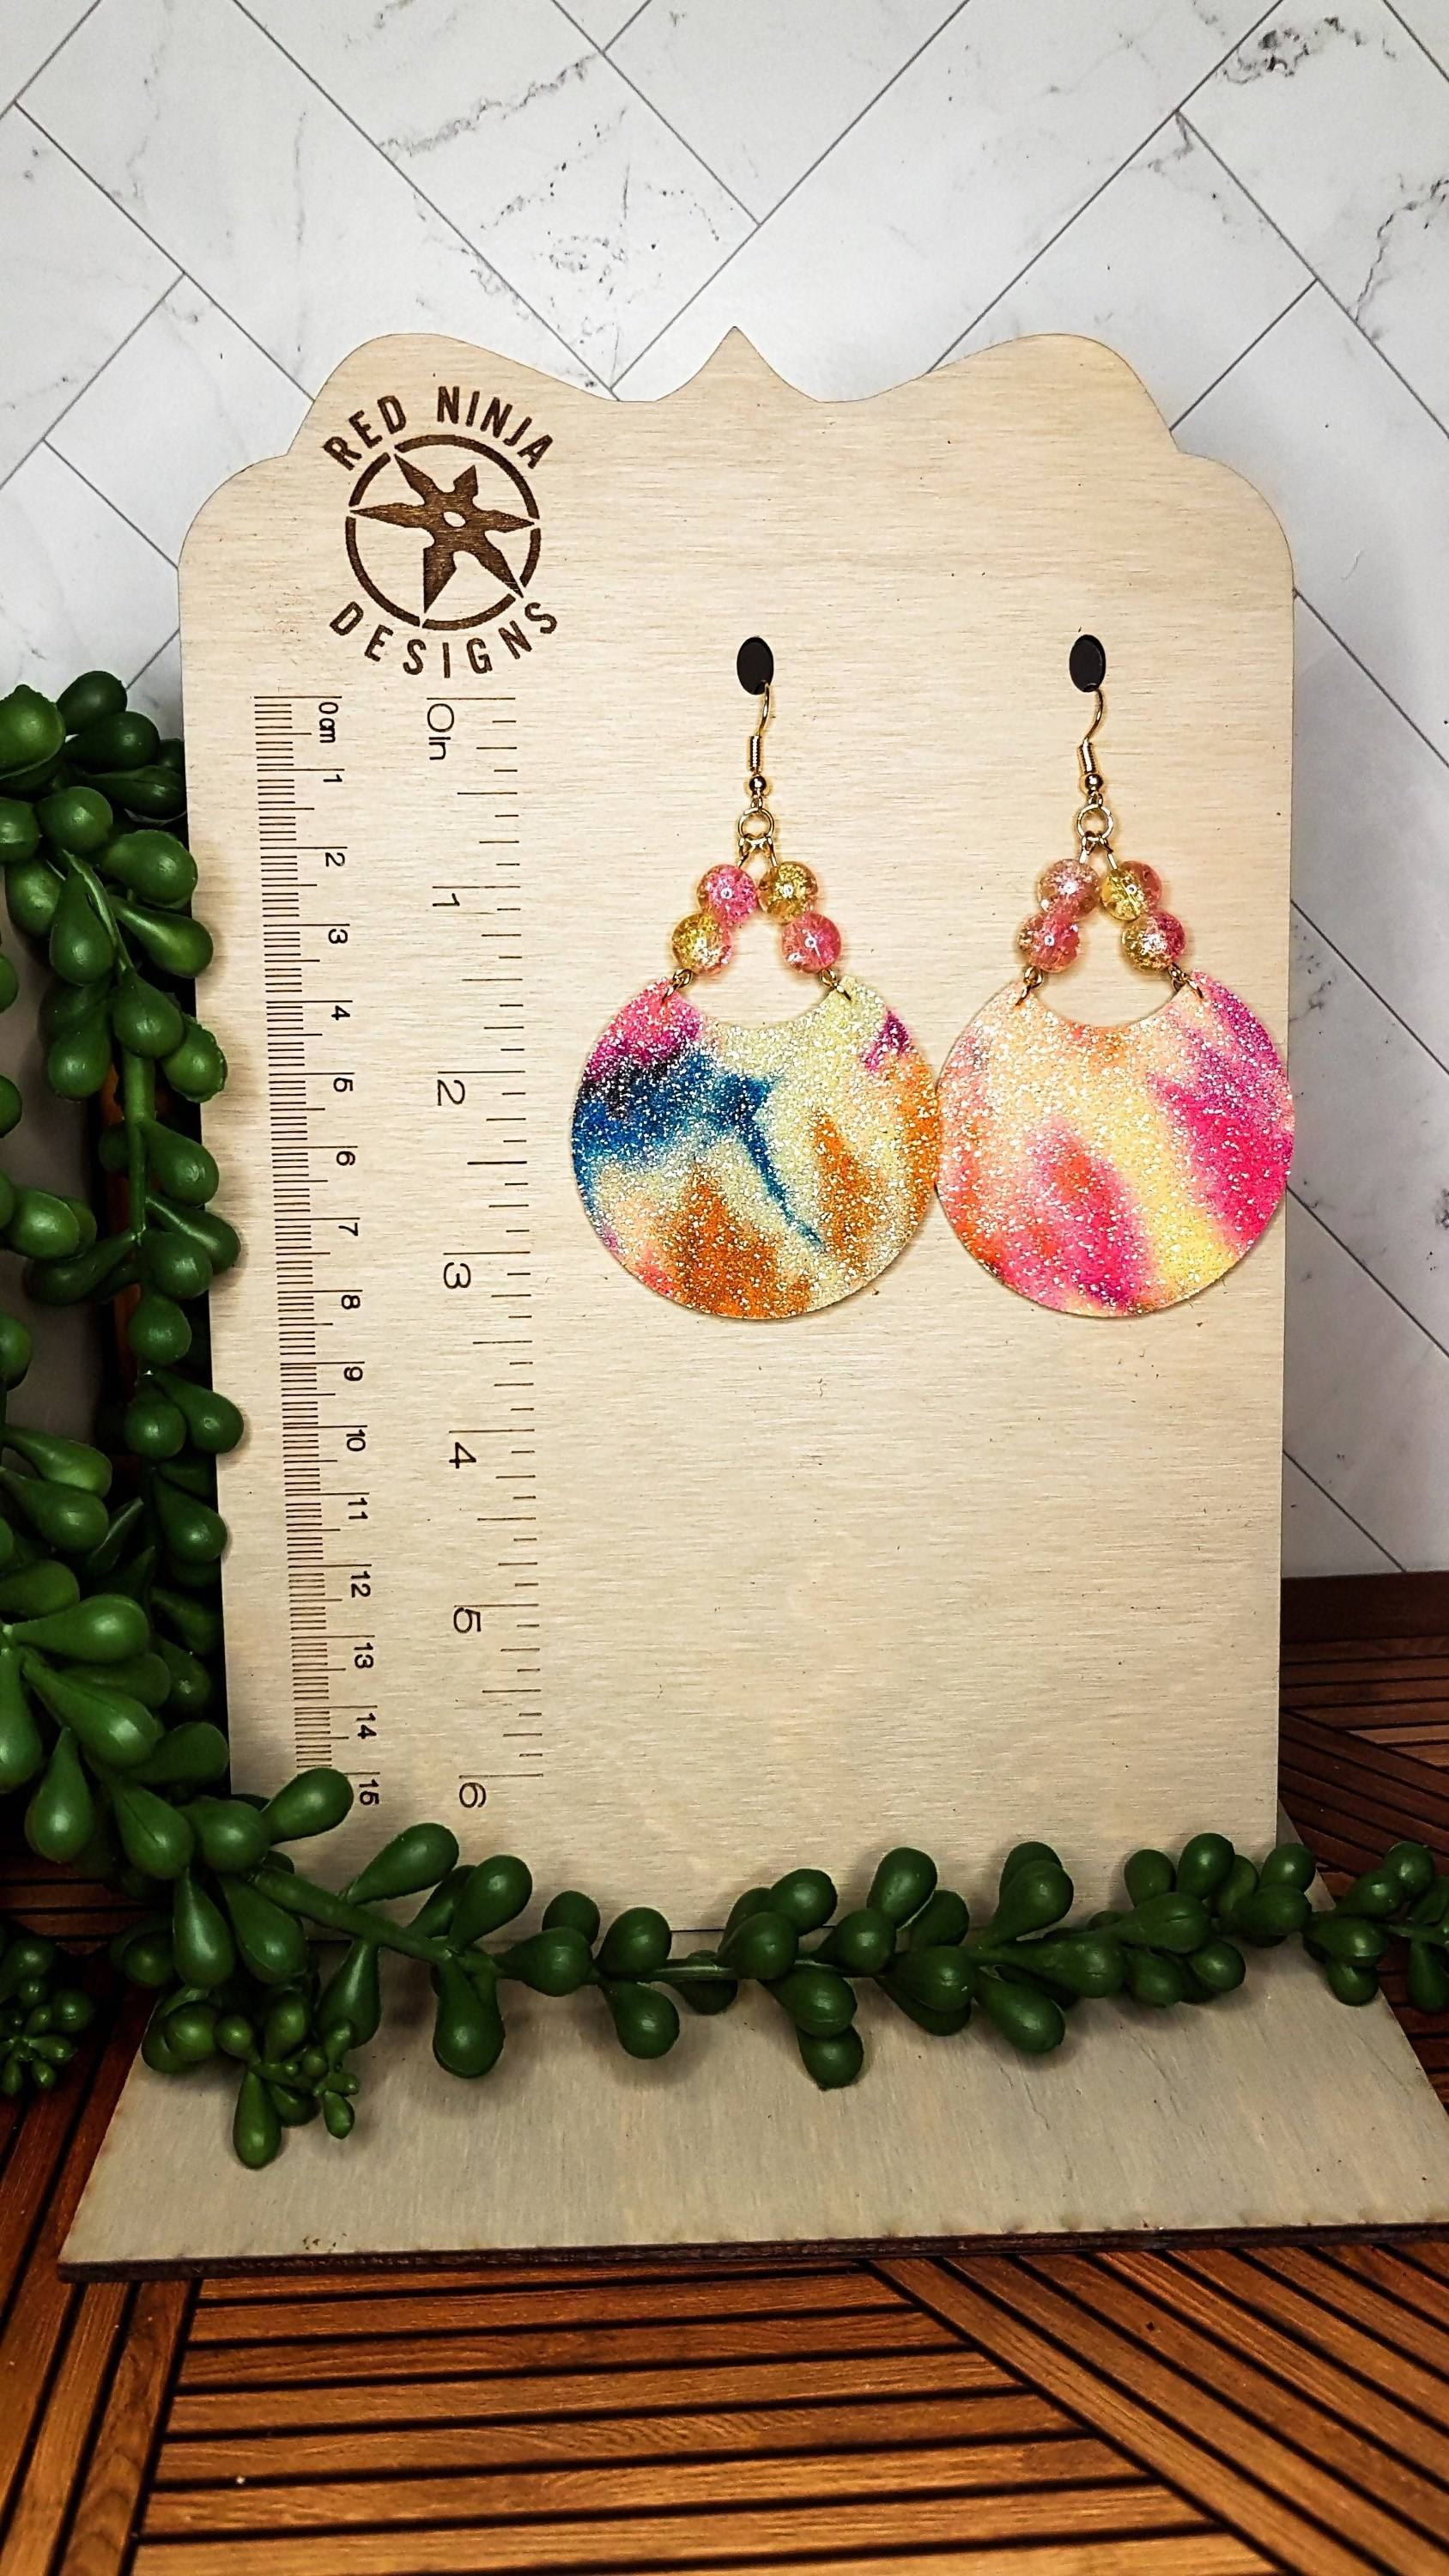 Round Leather Earrings, Circle Leather Earrings, Leather Dangles, Genuine Leather Disc Earrings, Real Leather Earrings, Neon Tie Die